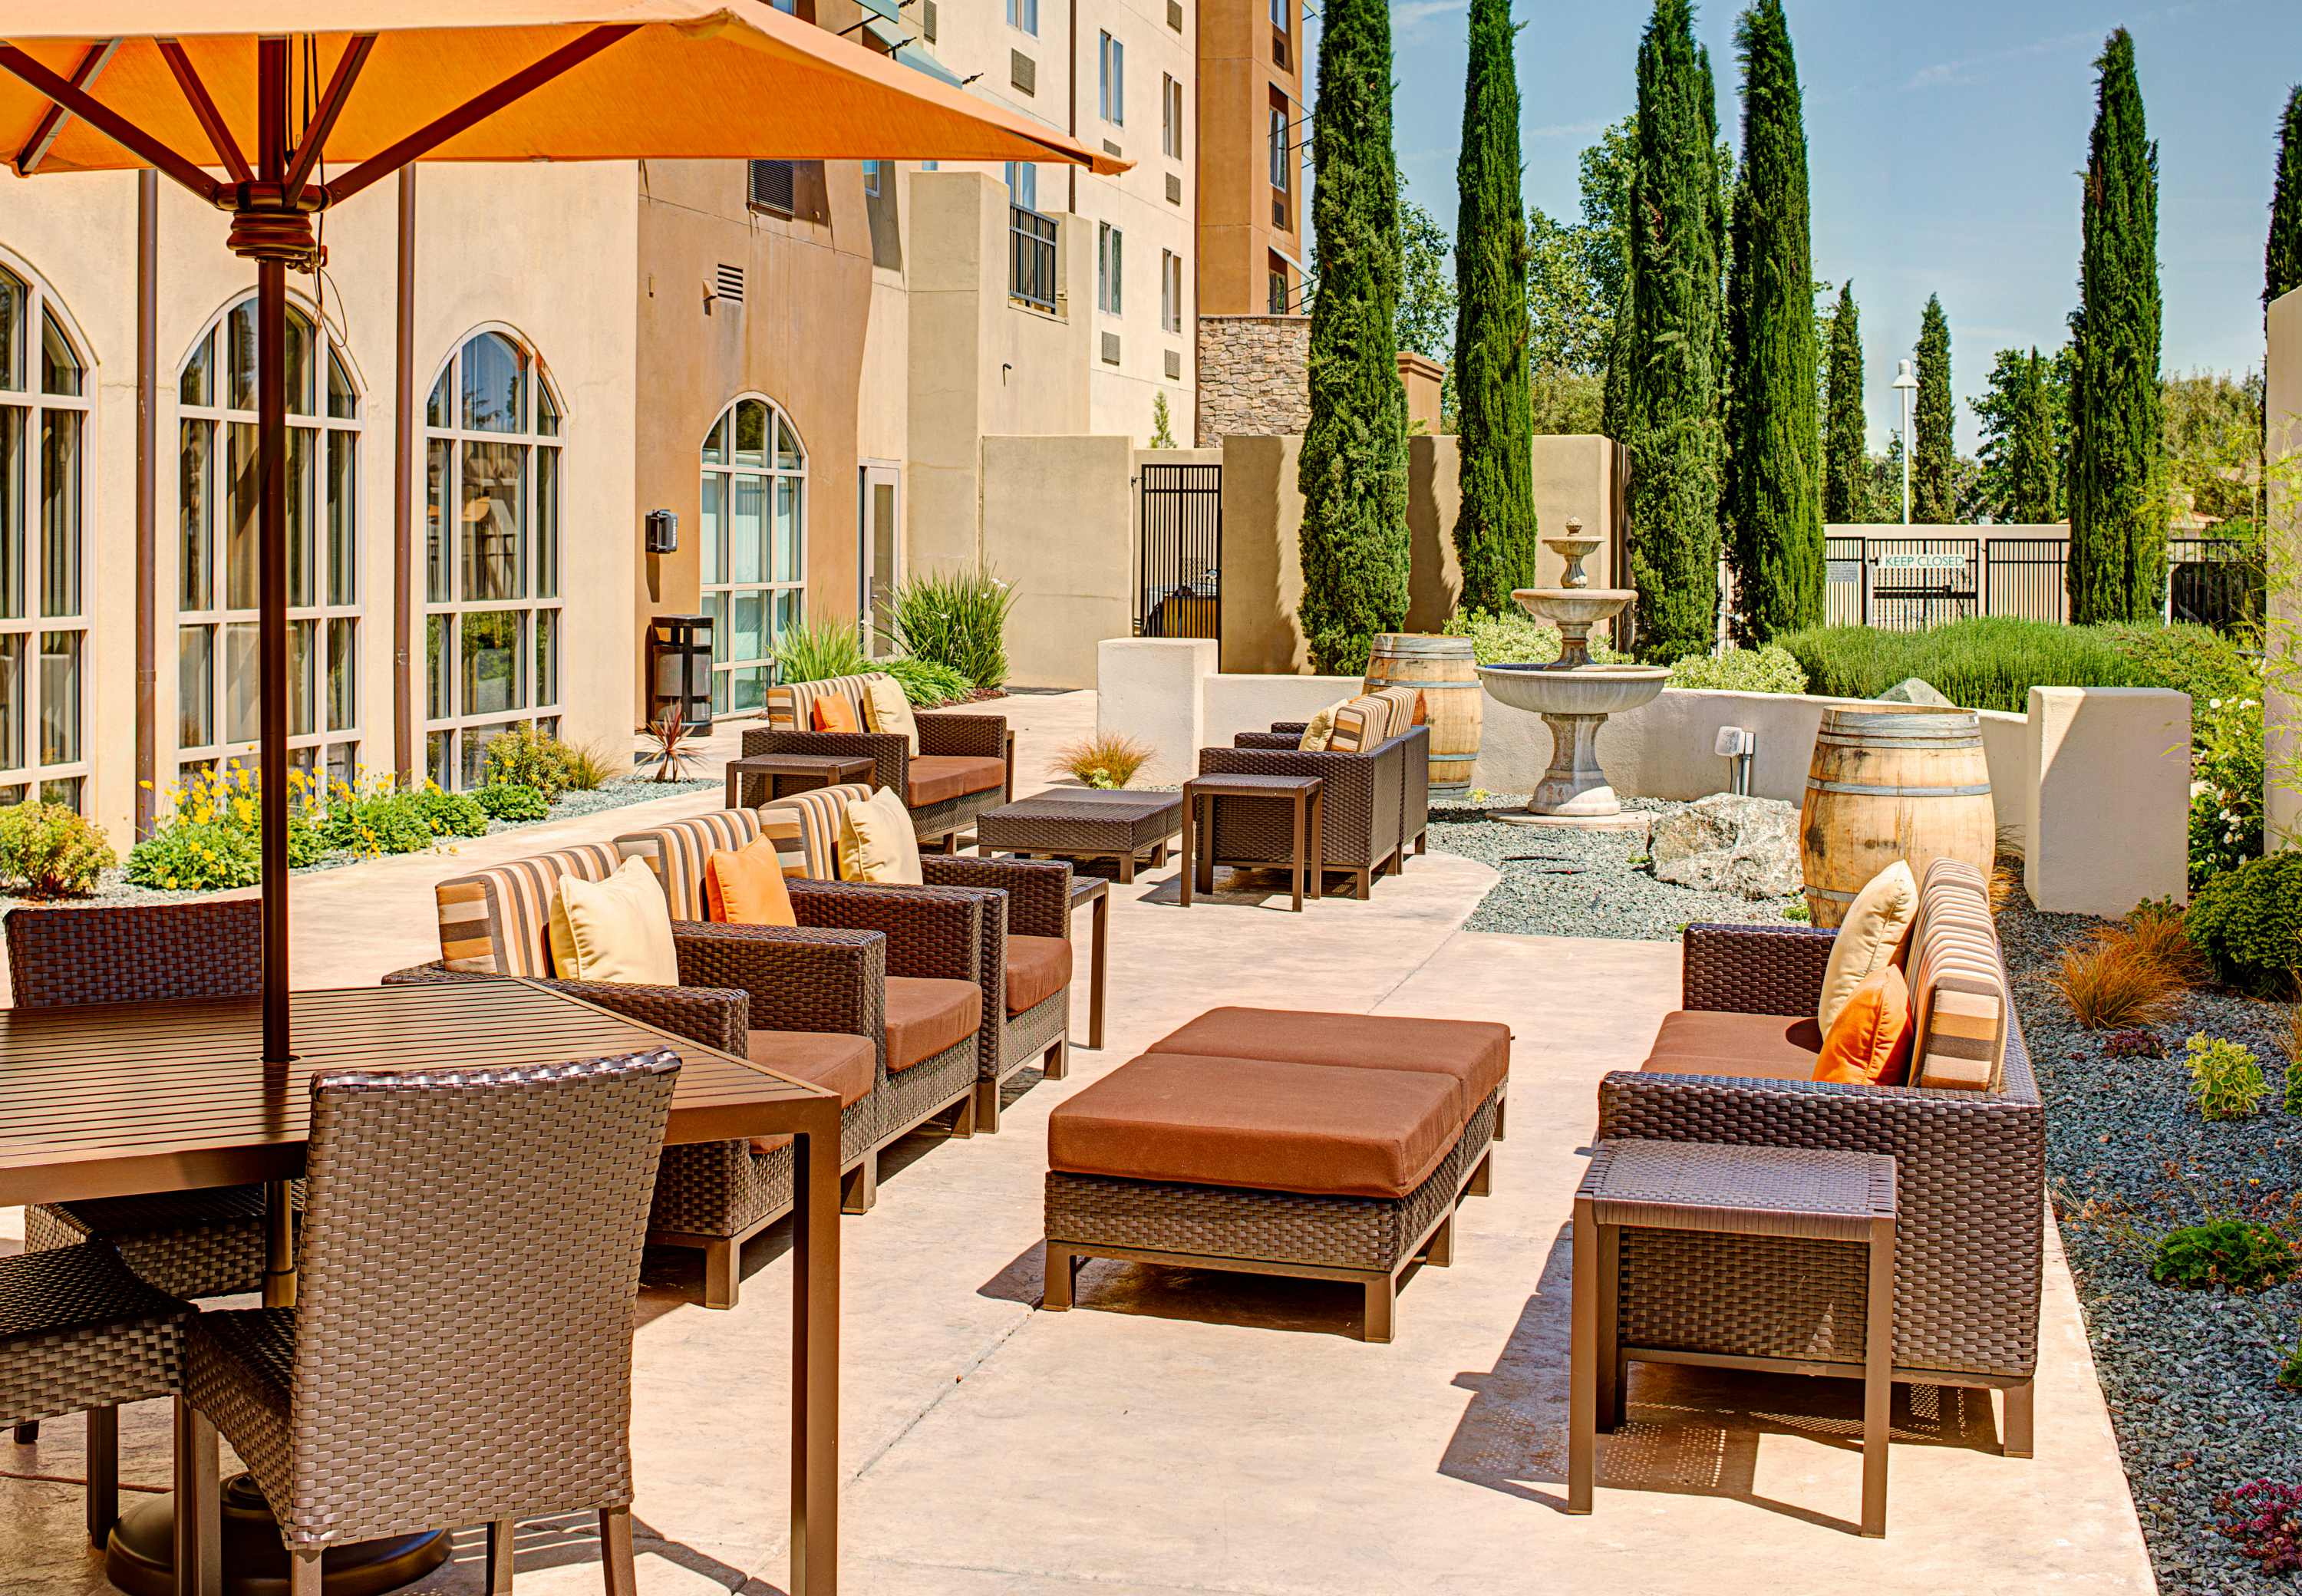 Courtyard by Marriott Paso Robles image 7